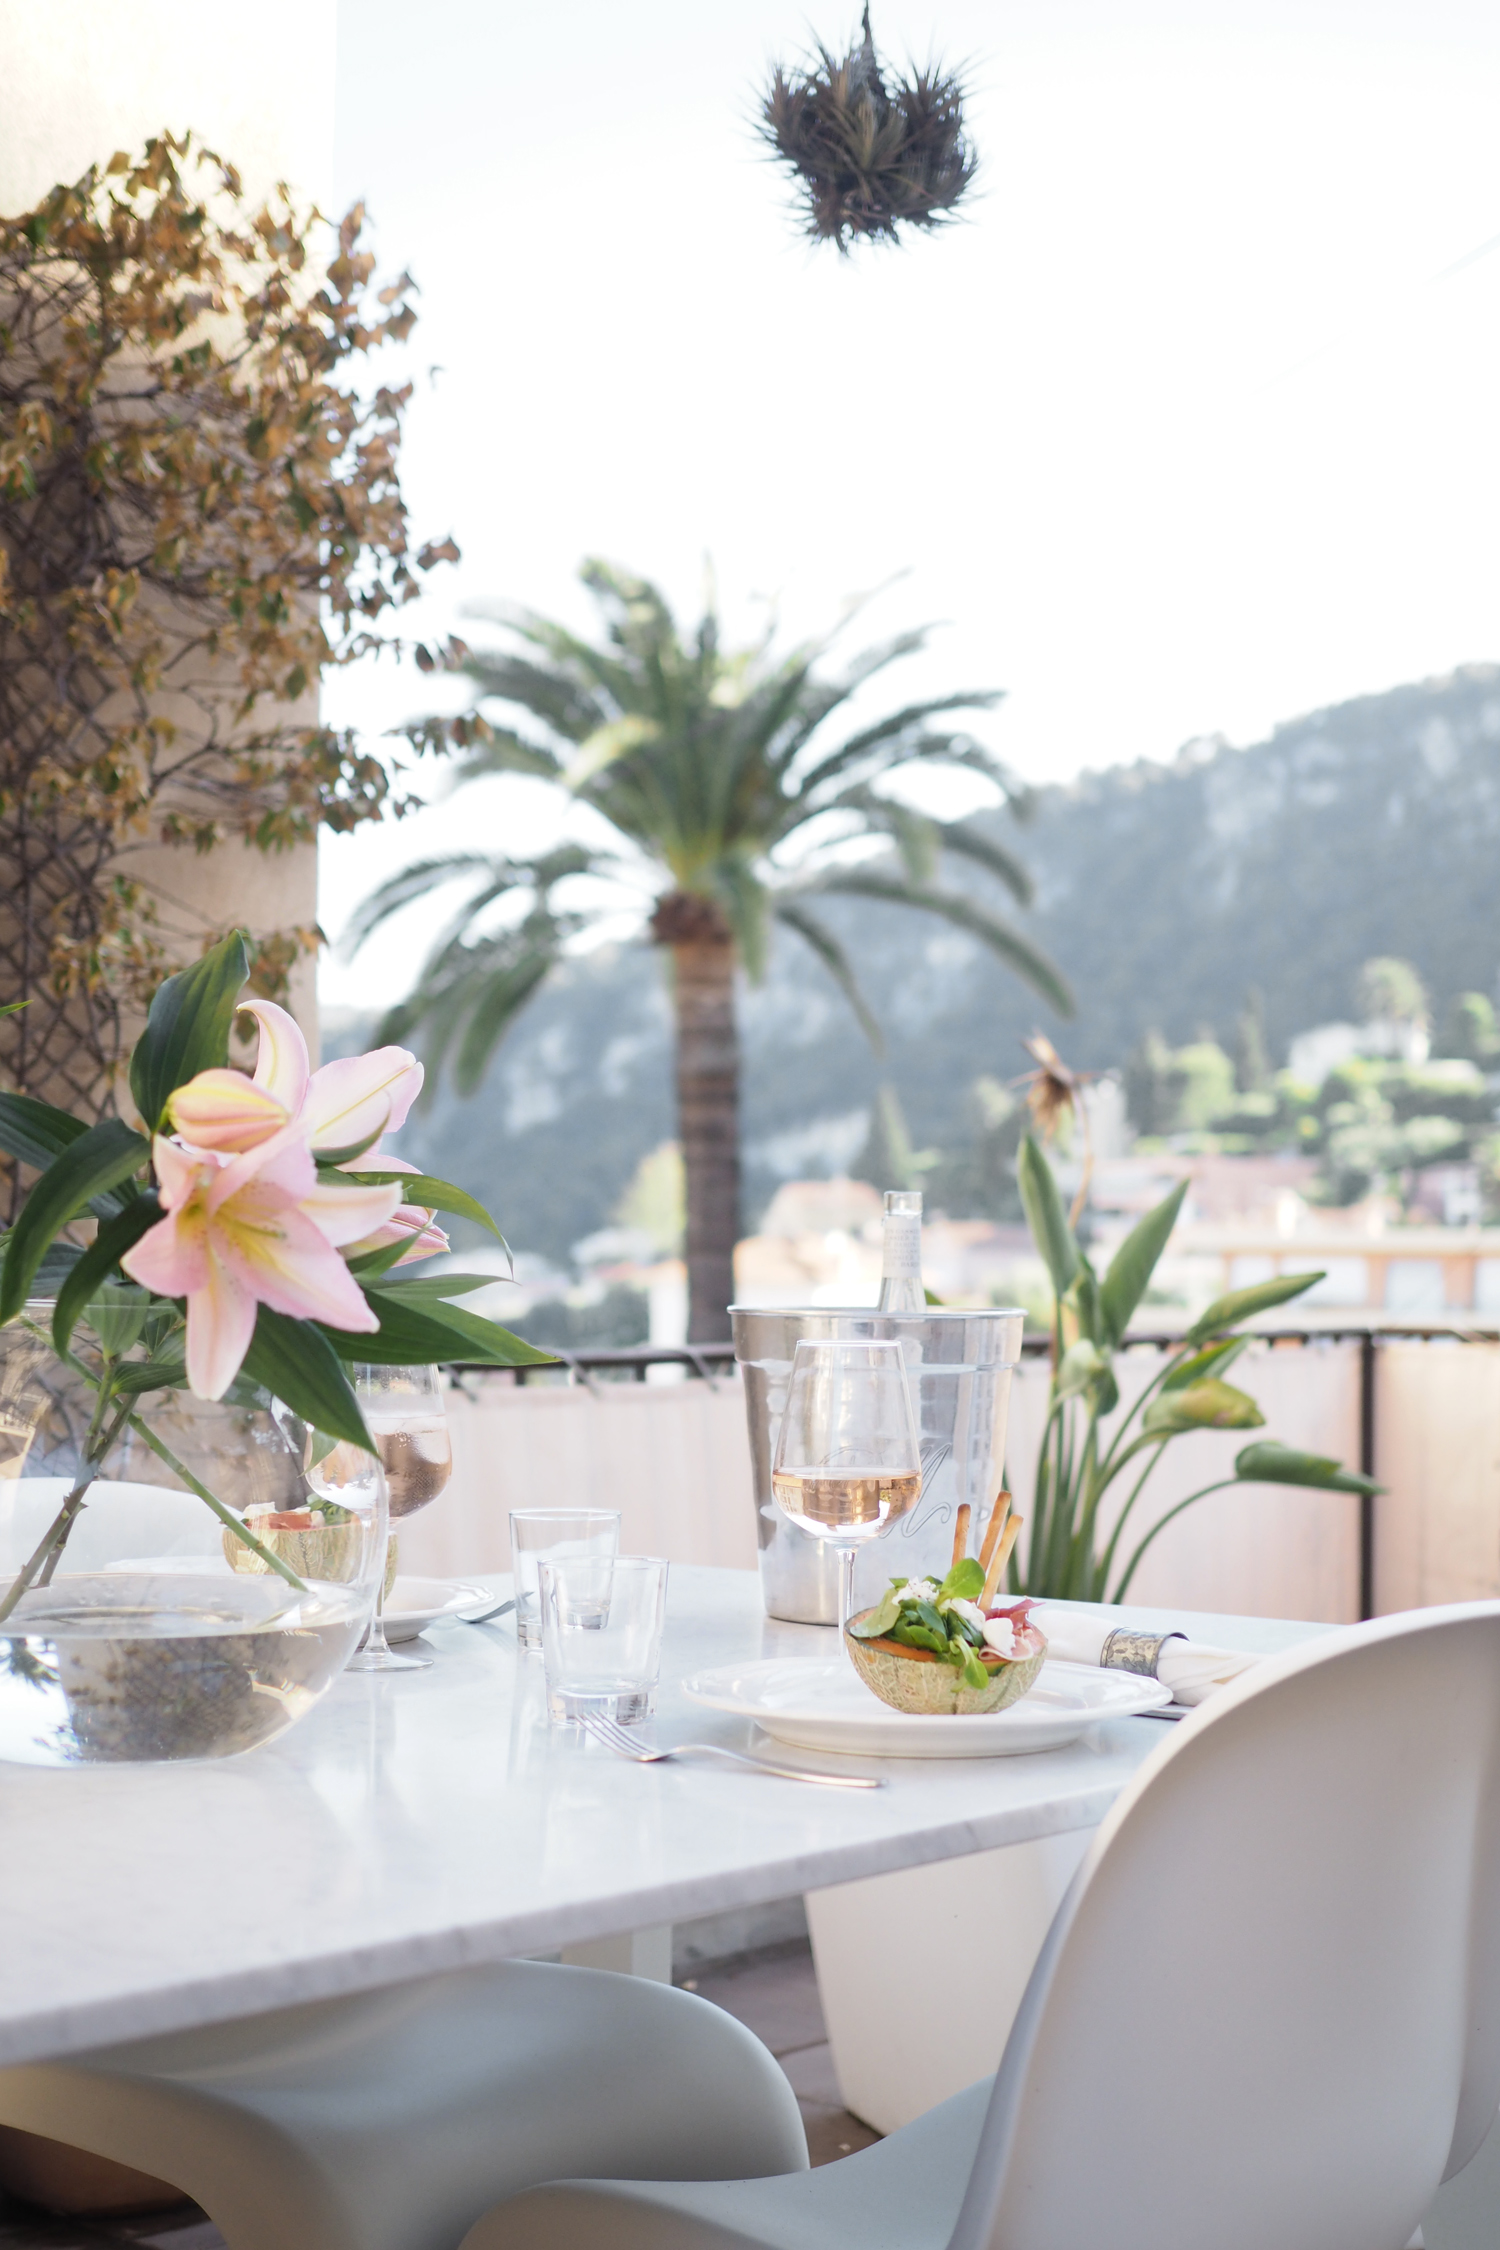 Char and the city - Dinner on the terrace in South of France, Villefranche-sur-Mer, French Riviera